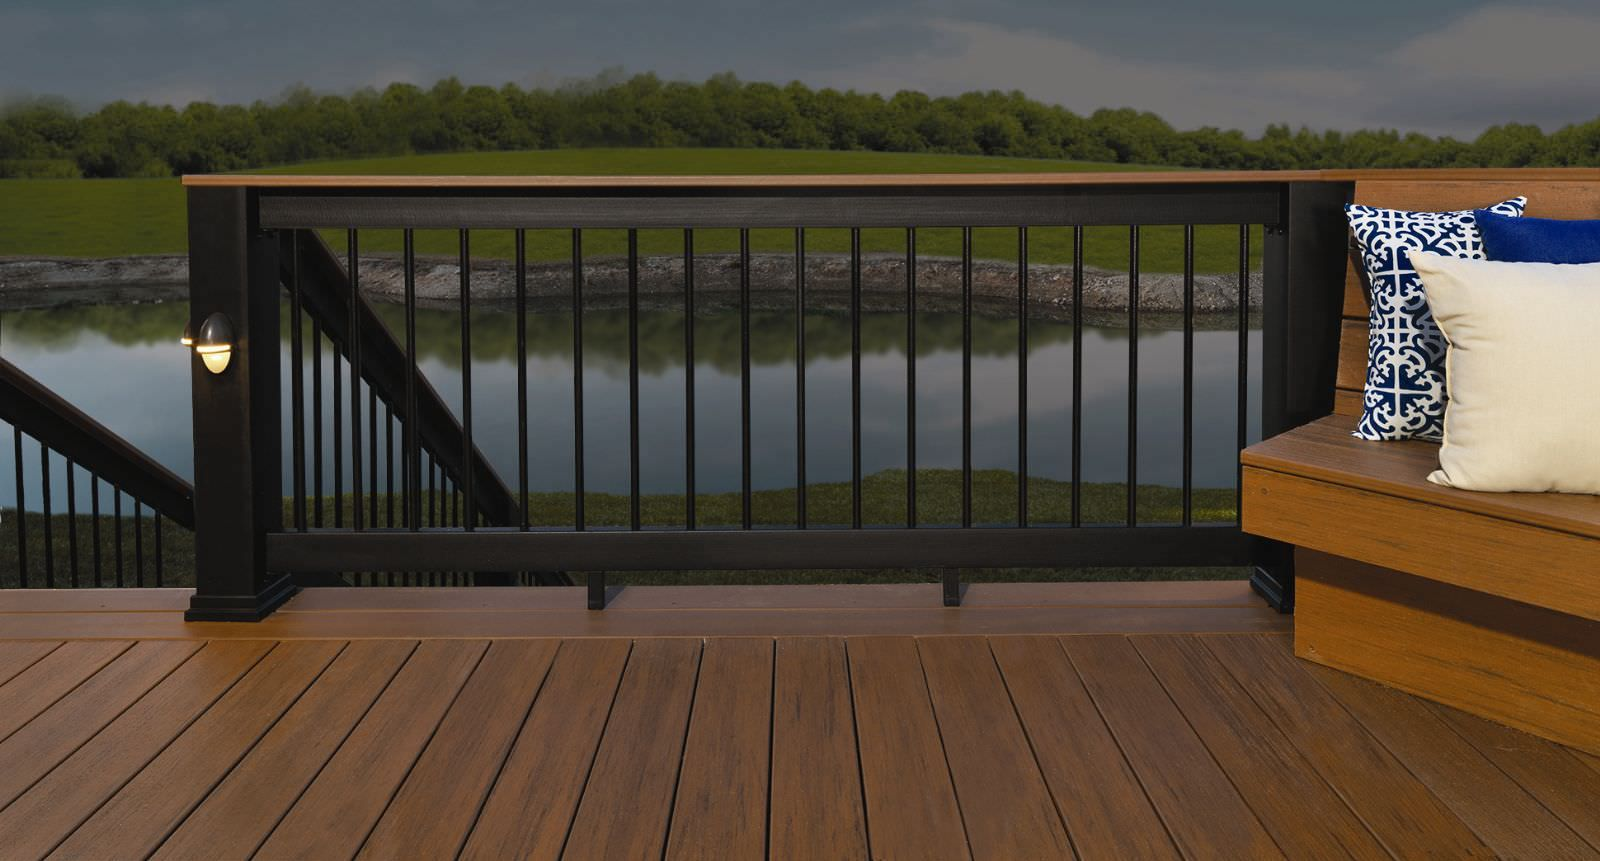 24 Foot Round Pool Deck Pricing Average Cost Of A 20 X 20 Deck From Lowes Wood And Composite Decking Uk Pr Deck Railings Metal Deck Railing Deck Railing Design